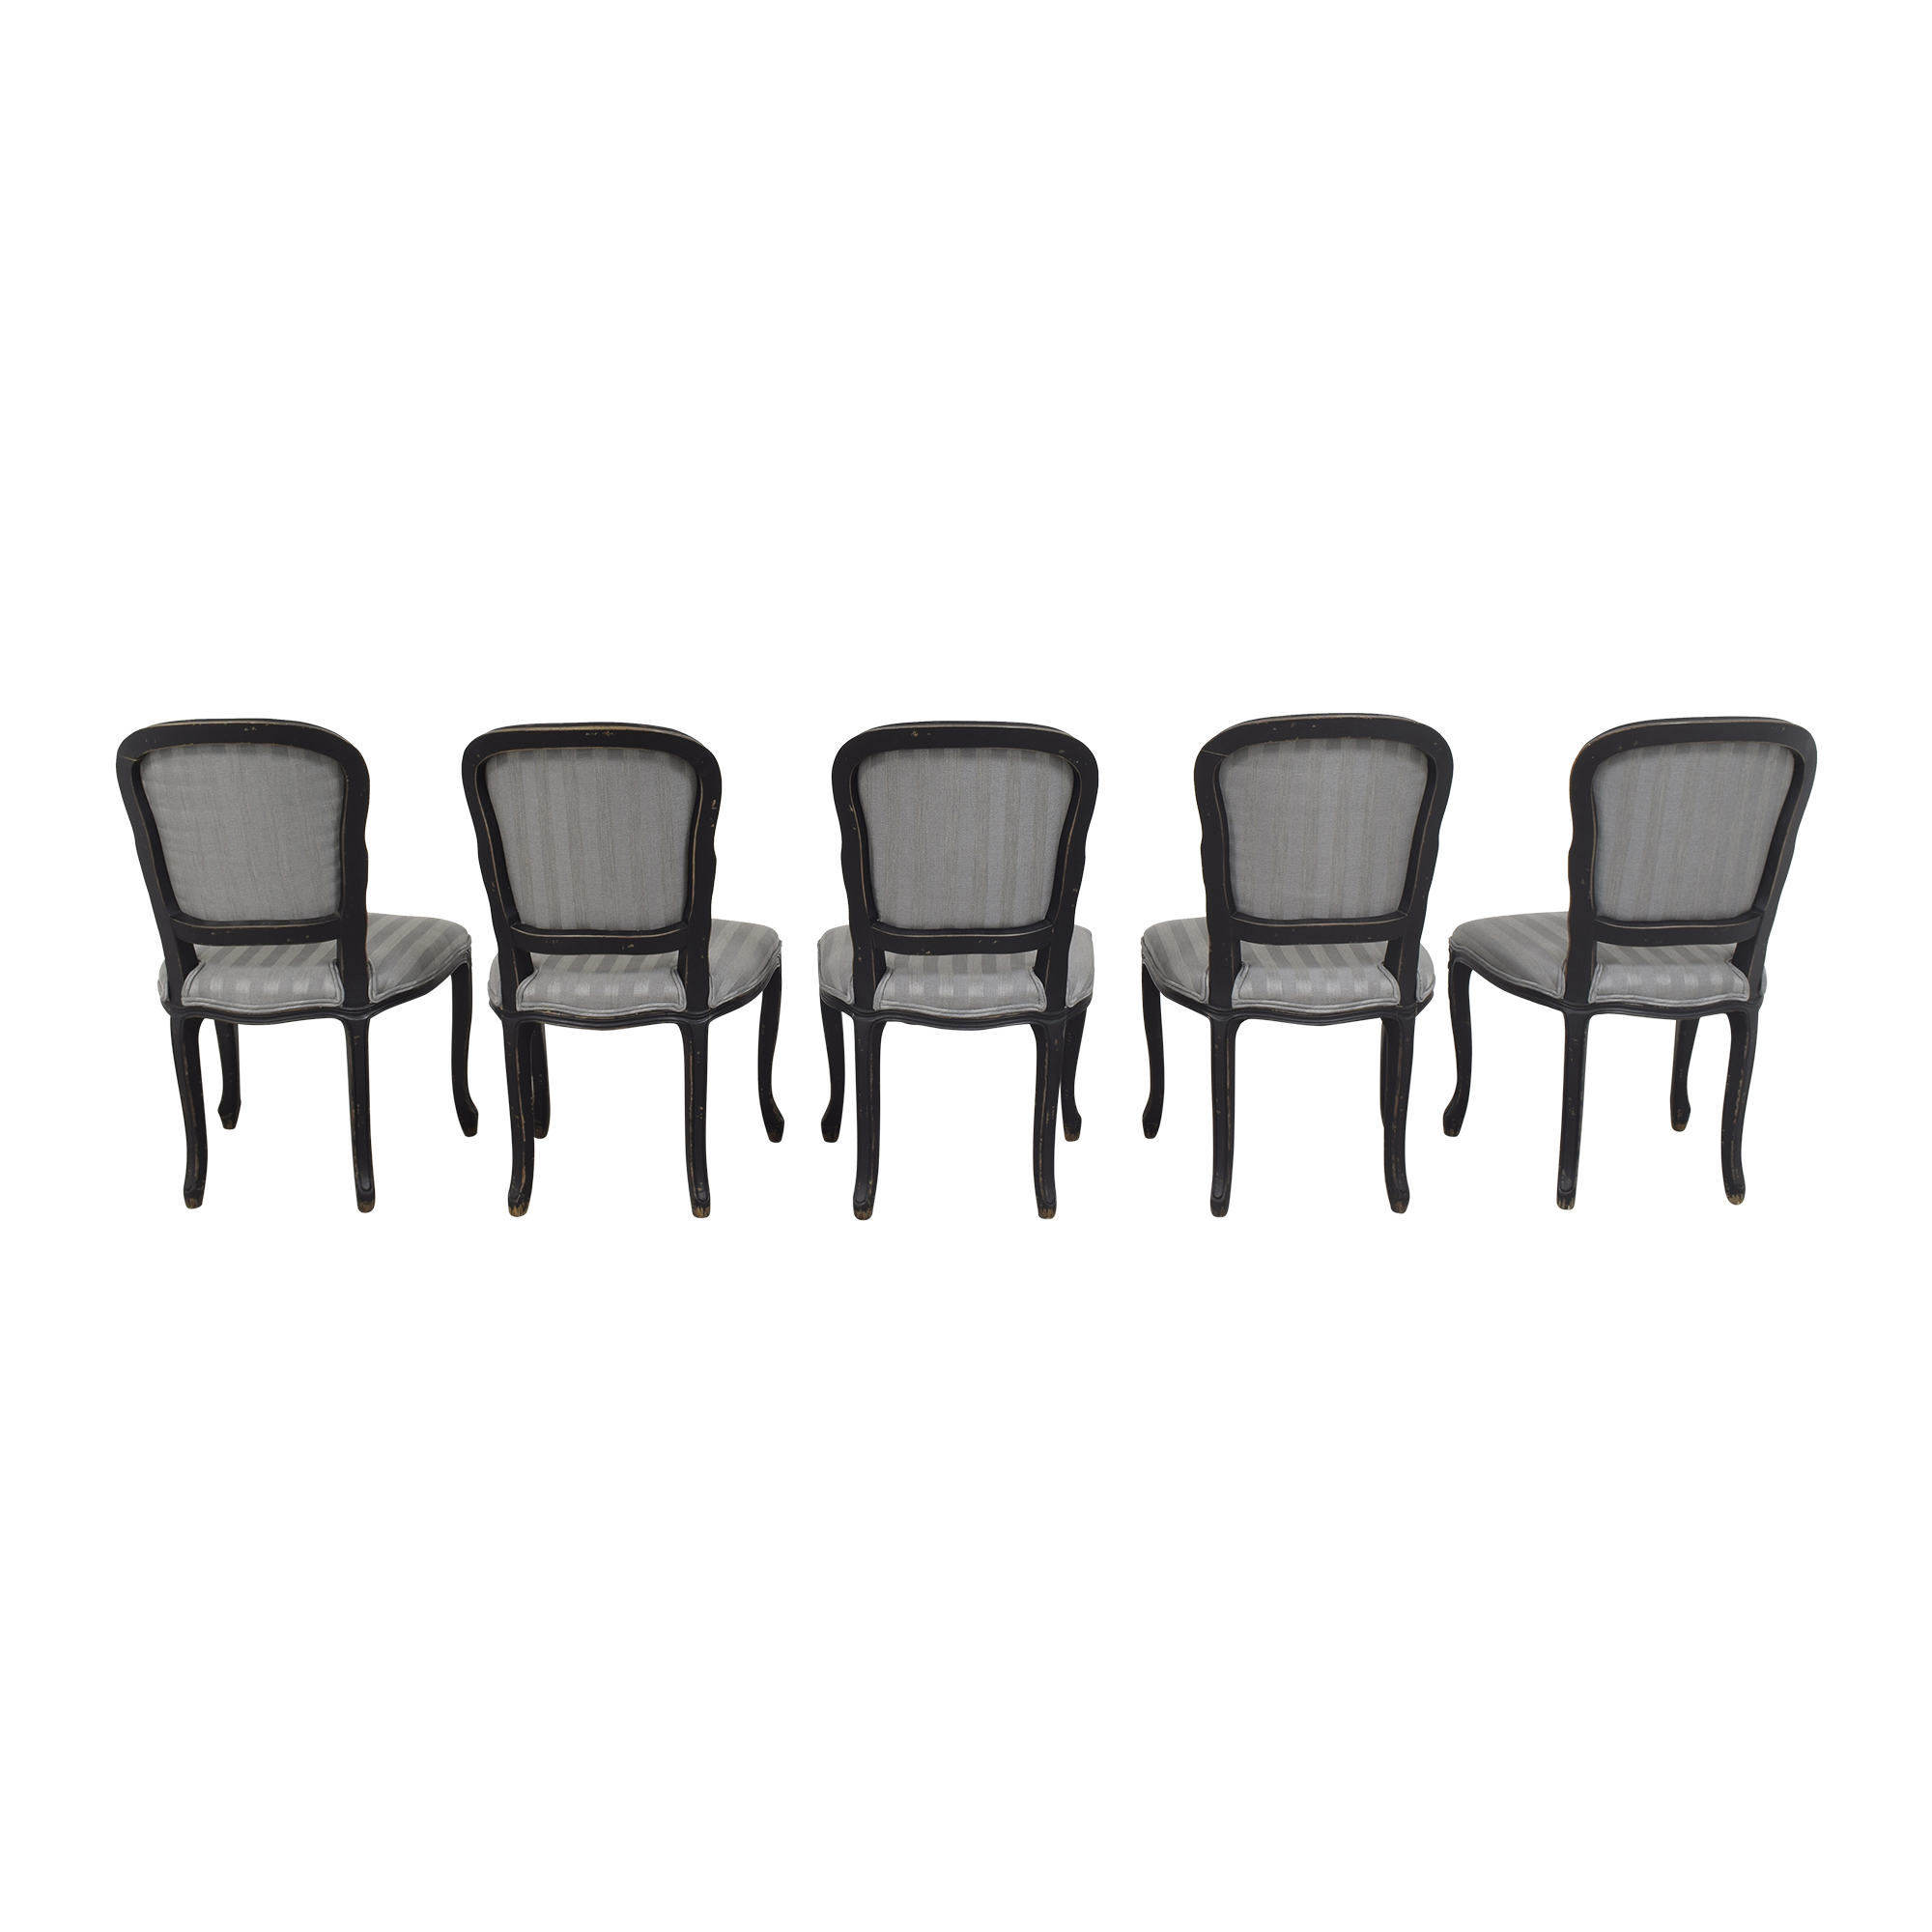 Four Hands Four Hands Orleans Dining Chairs Chairs